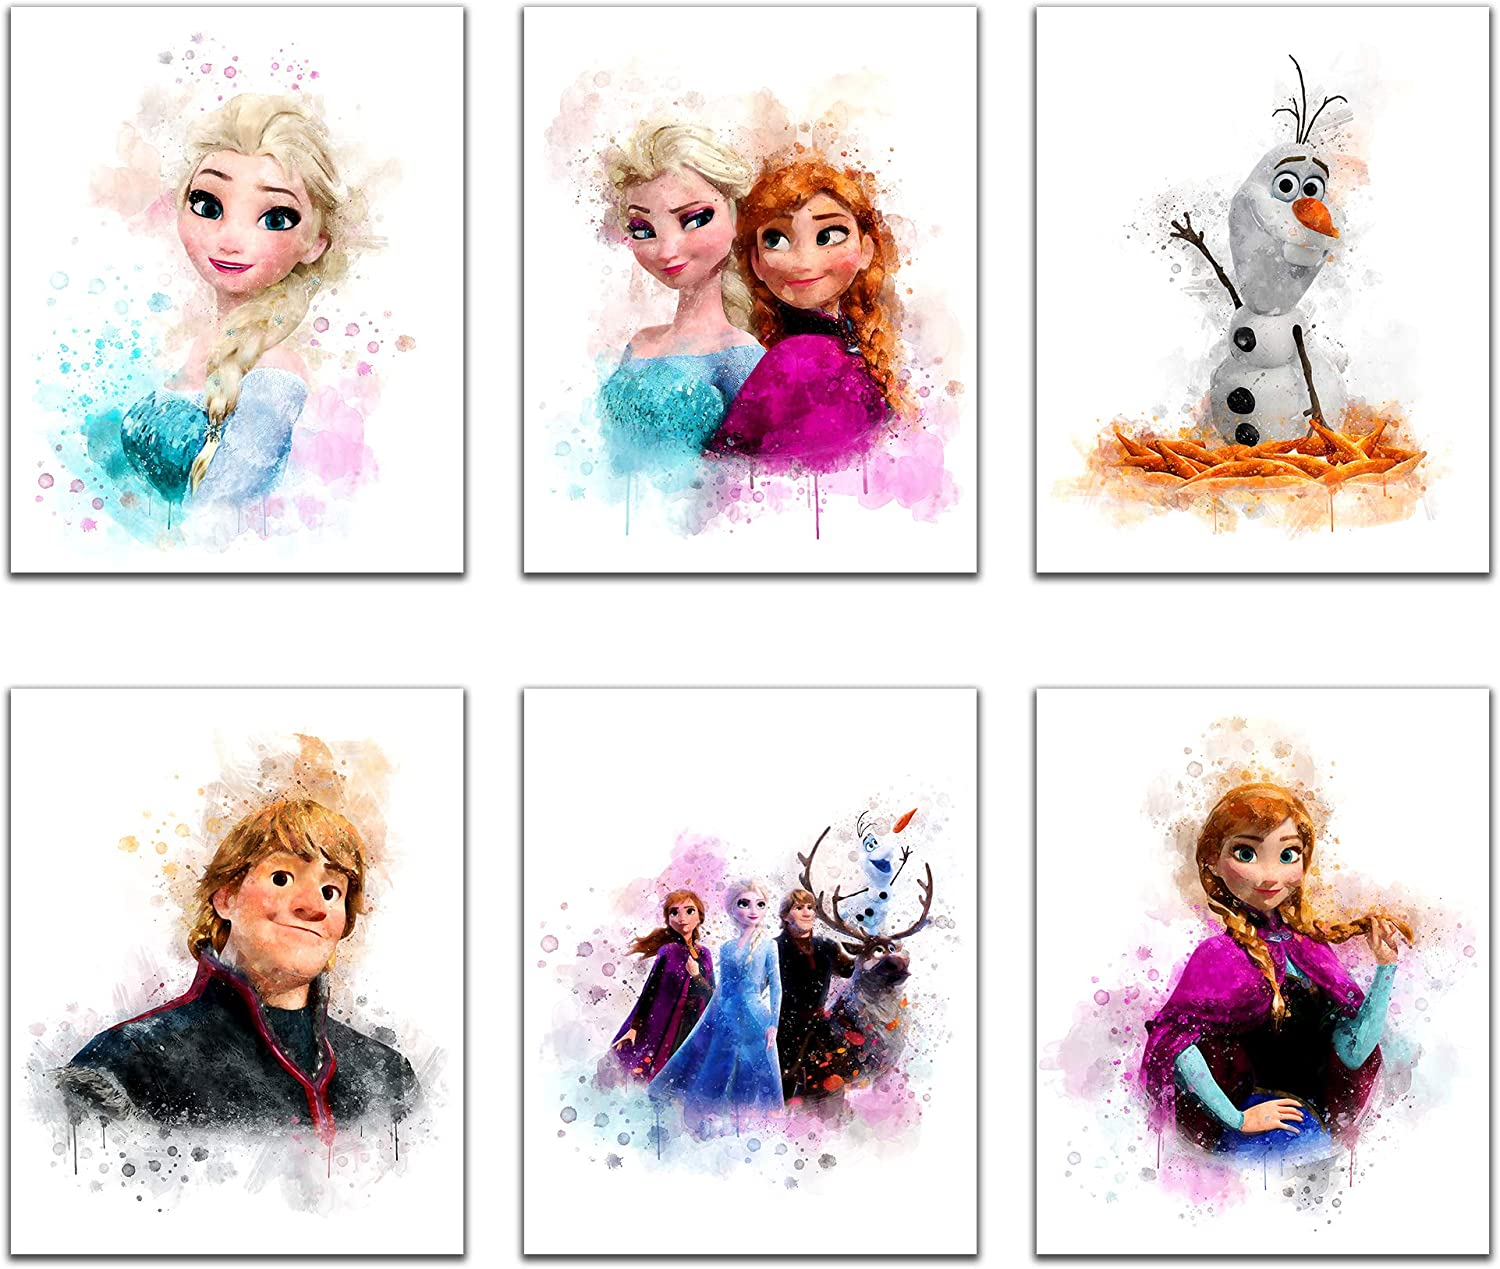 Frozen Wall Decor - Set of 6 (8 inch x 10 inch) Watercolor Poster Prints, Stuff For Nursery Wall Art, Posters for Baby Shower Decorations, Frozen Bedroom Decor for Girls, Kids Room Print (UNFRAMED)